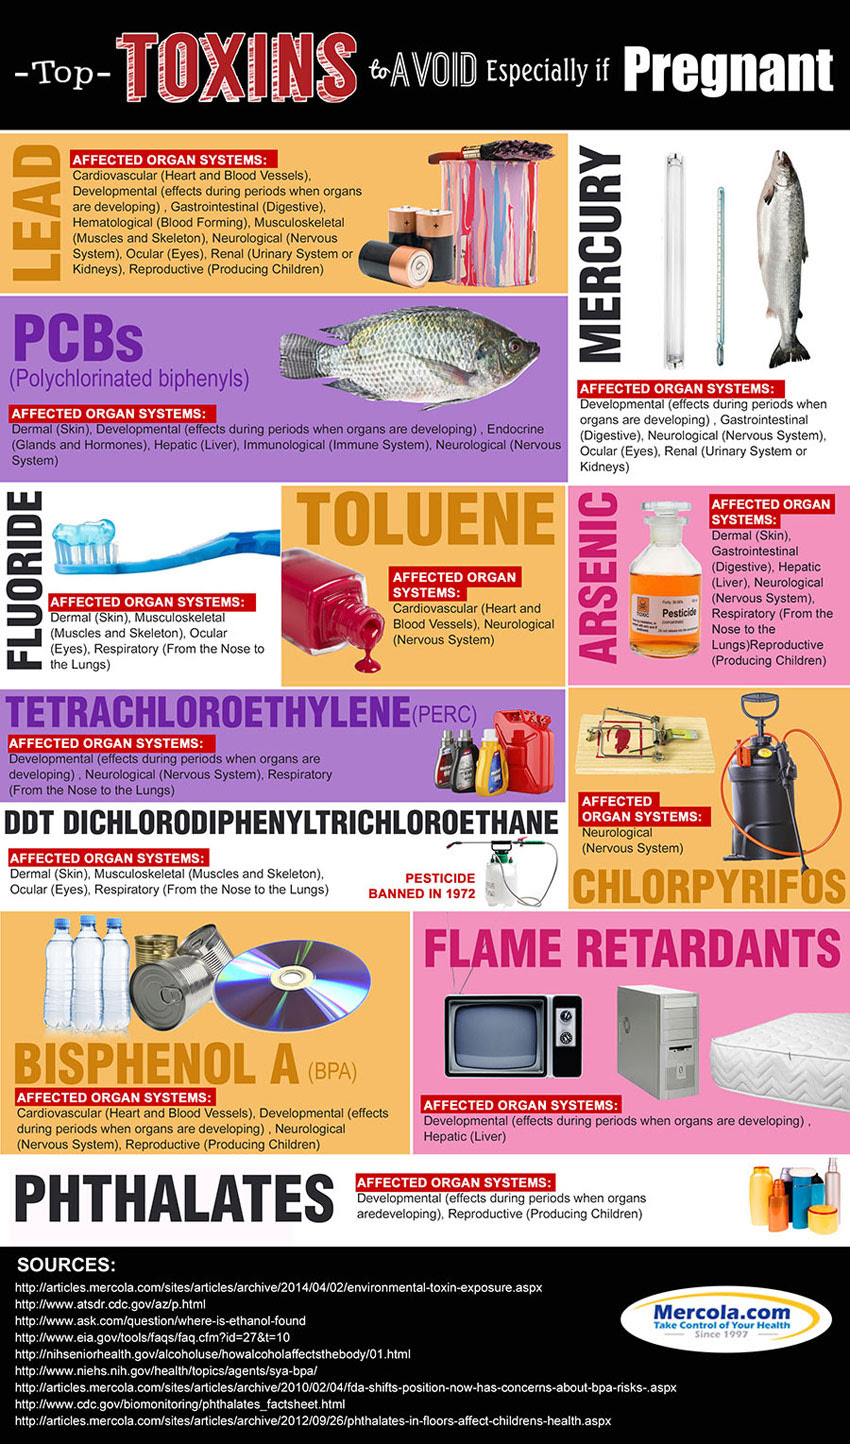 Toxins to Avoid If Pregnant